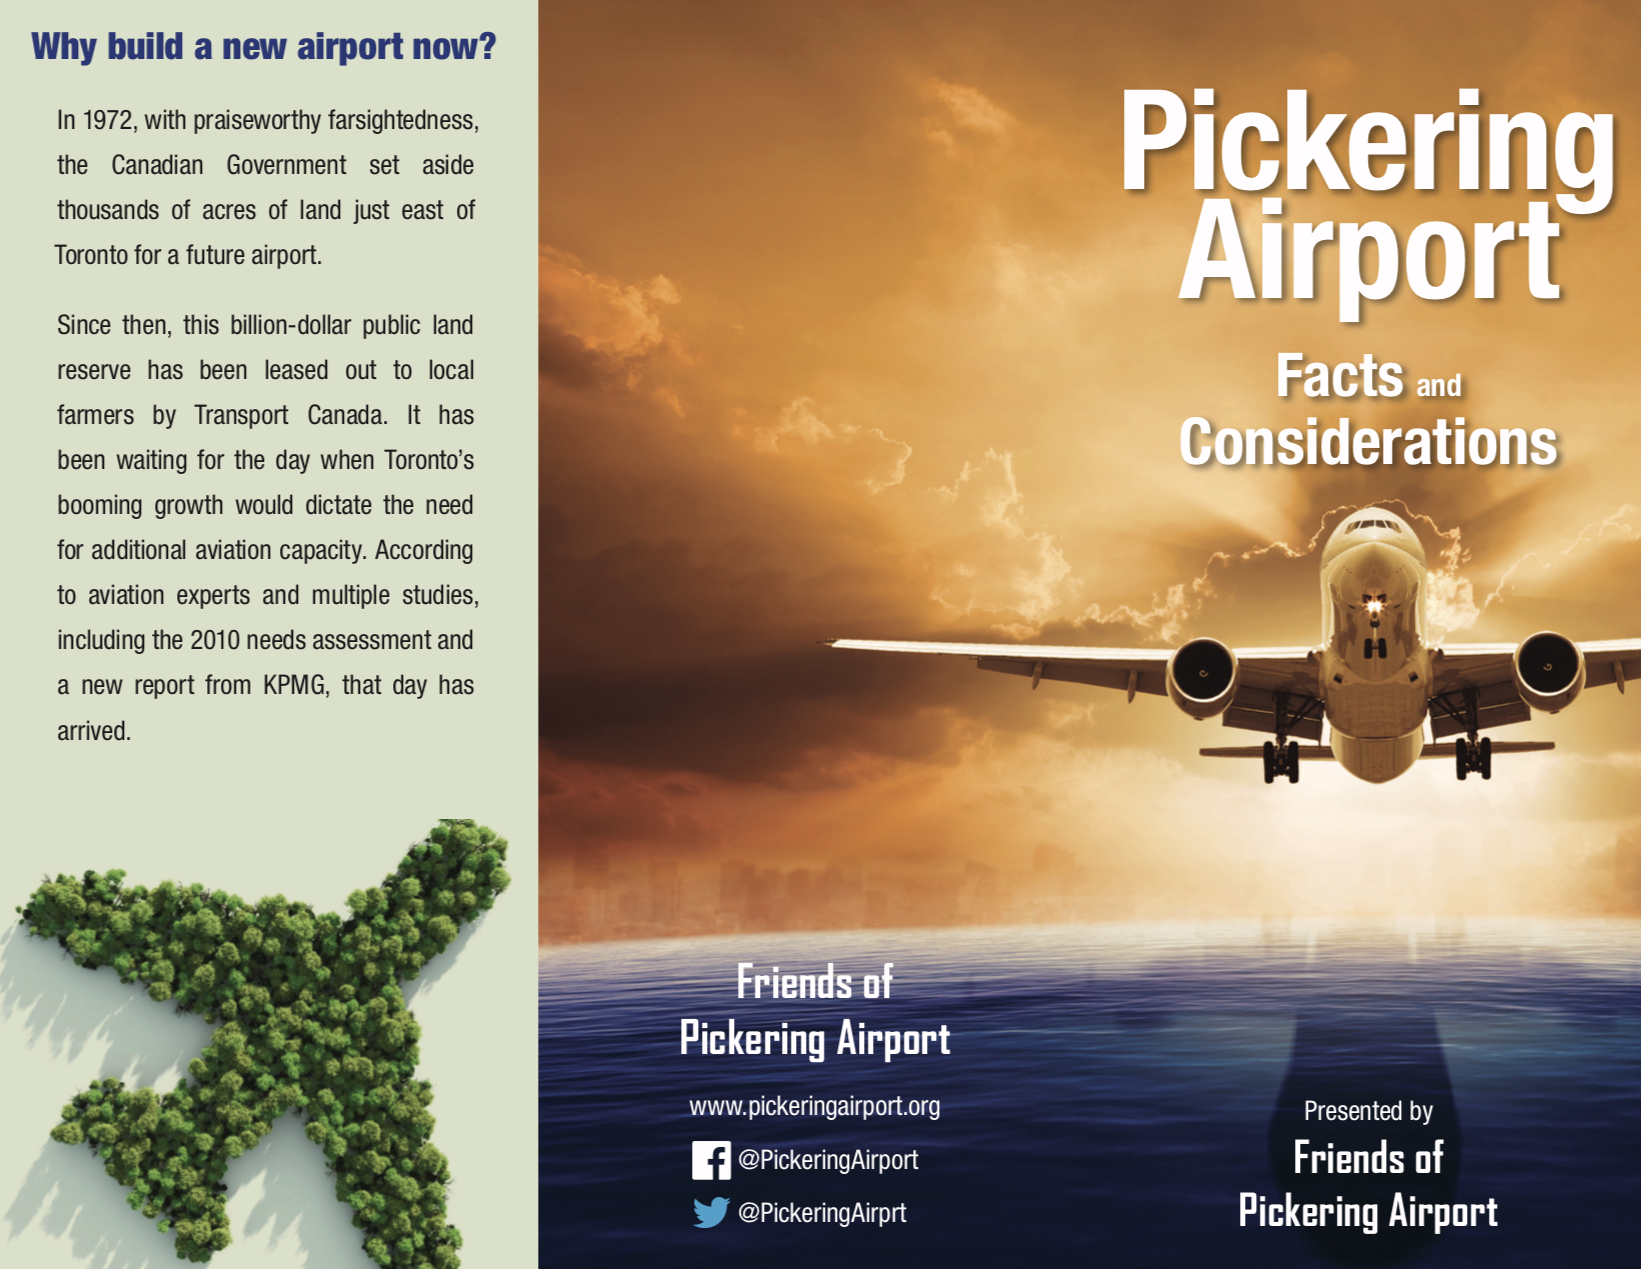 Pickering Airport Brochure: Facts and Considerations